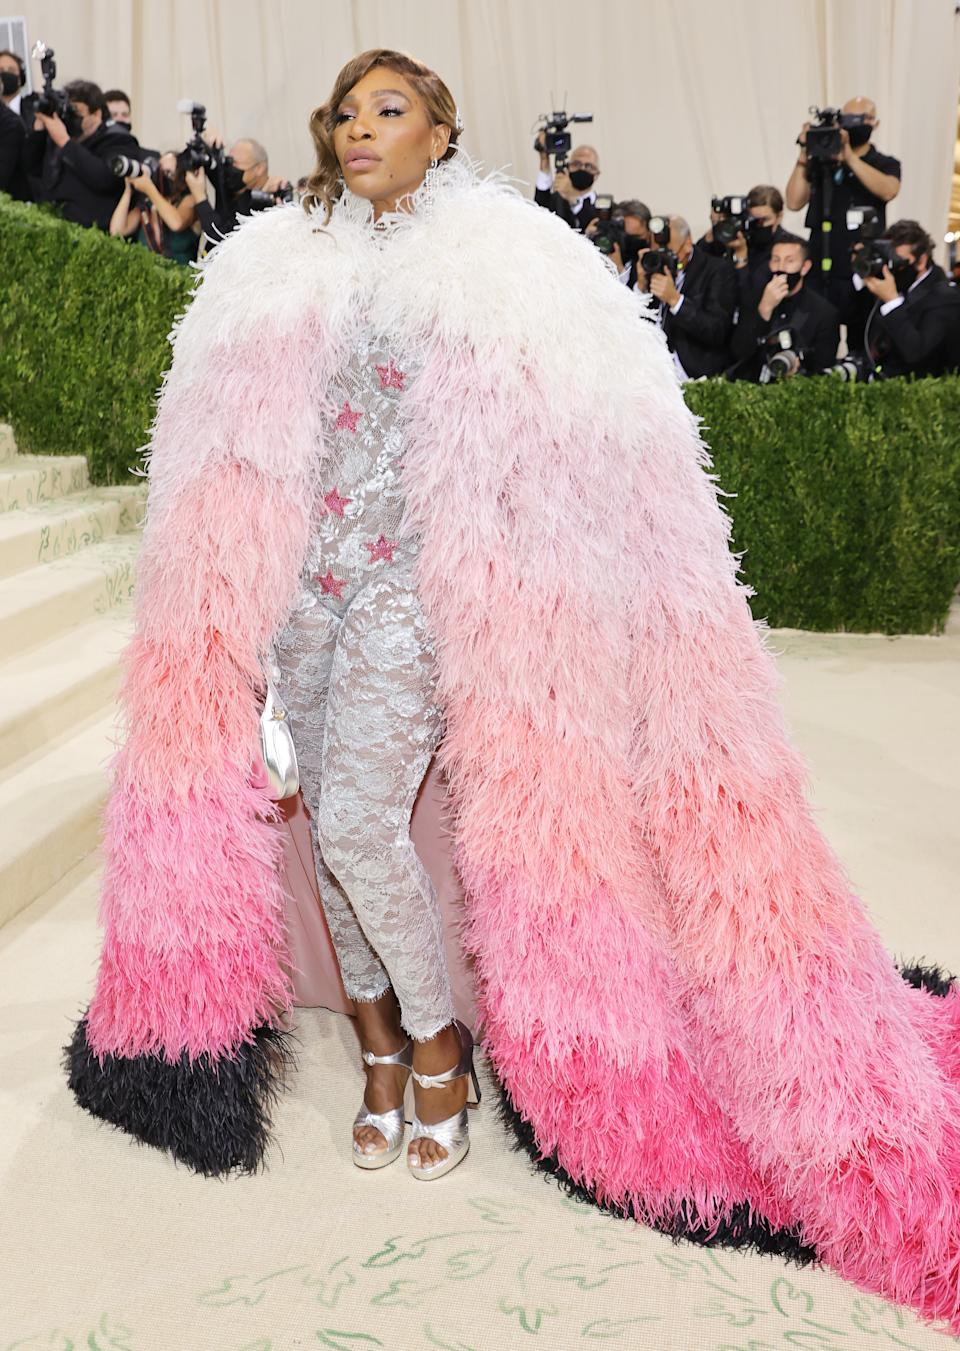 Serena Williams attends The 2021 Met Gala Celebrating In America: A Lexicon Of Fashion at Metropolitan Museum of Art on September 13, 2021 in New York City. (Getty Images)